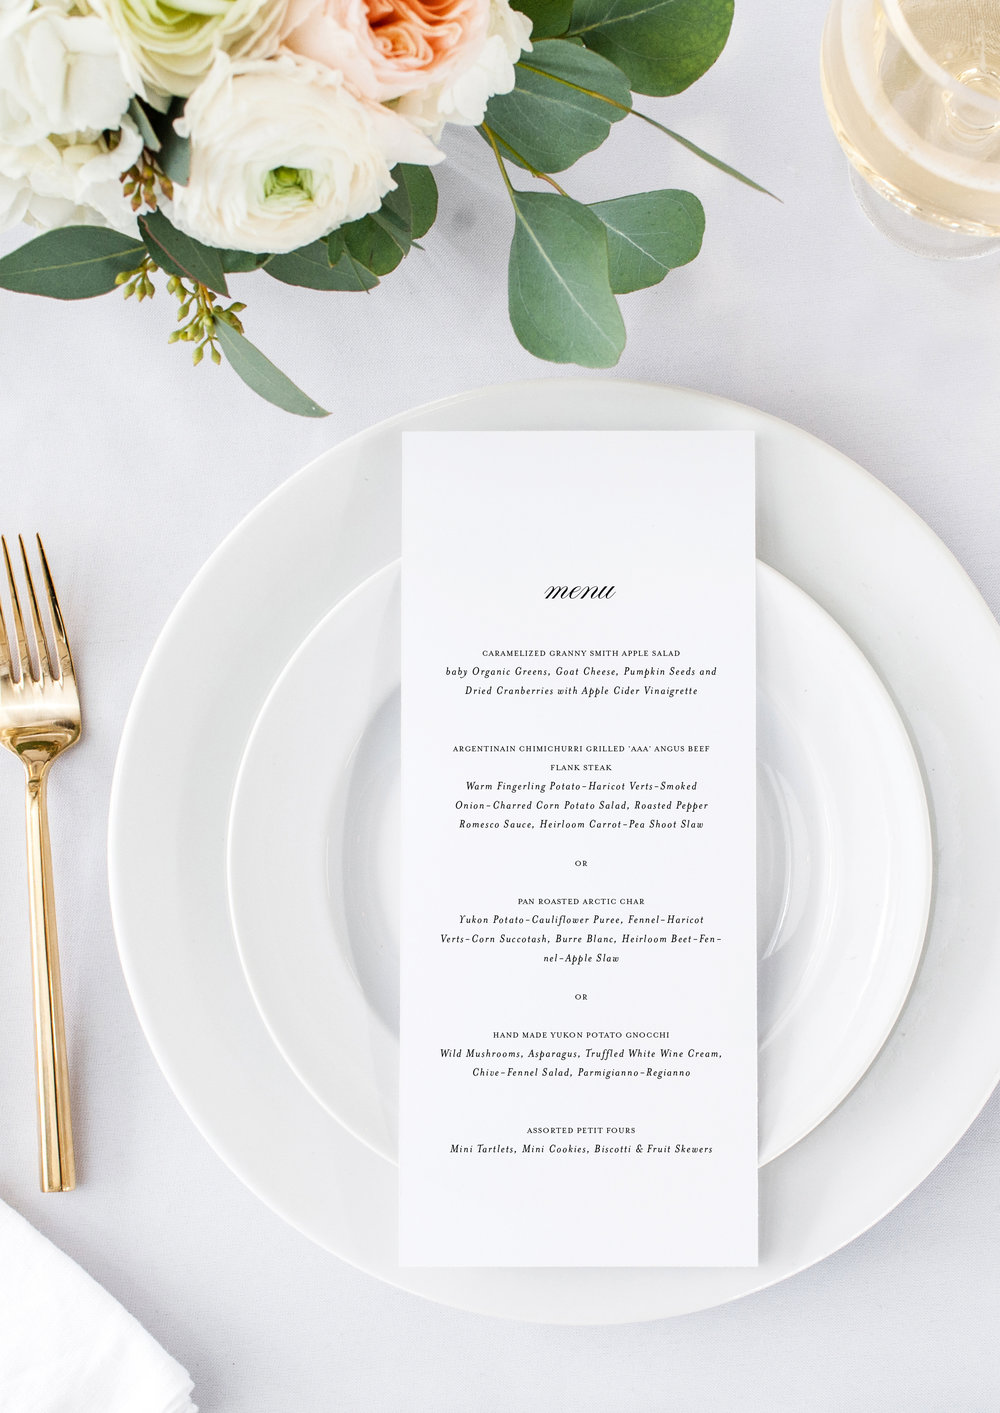 abigail and quinten8.jpgabigail and quinten timeless elegant wedding menu